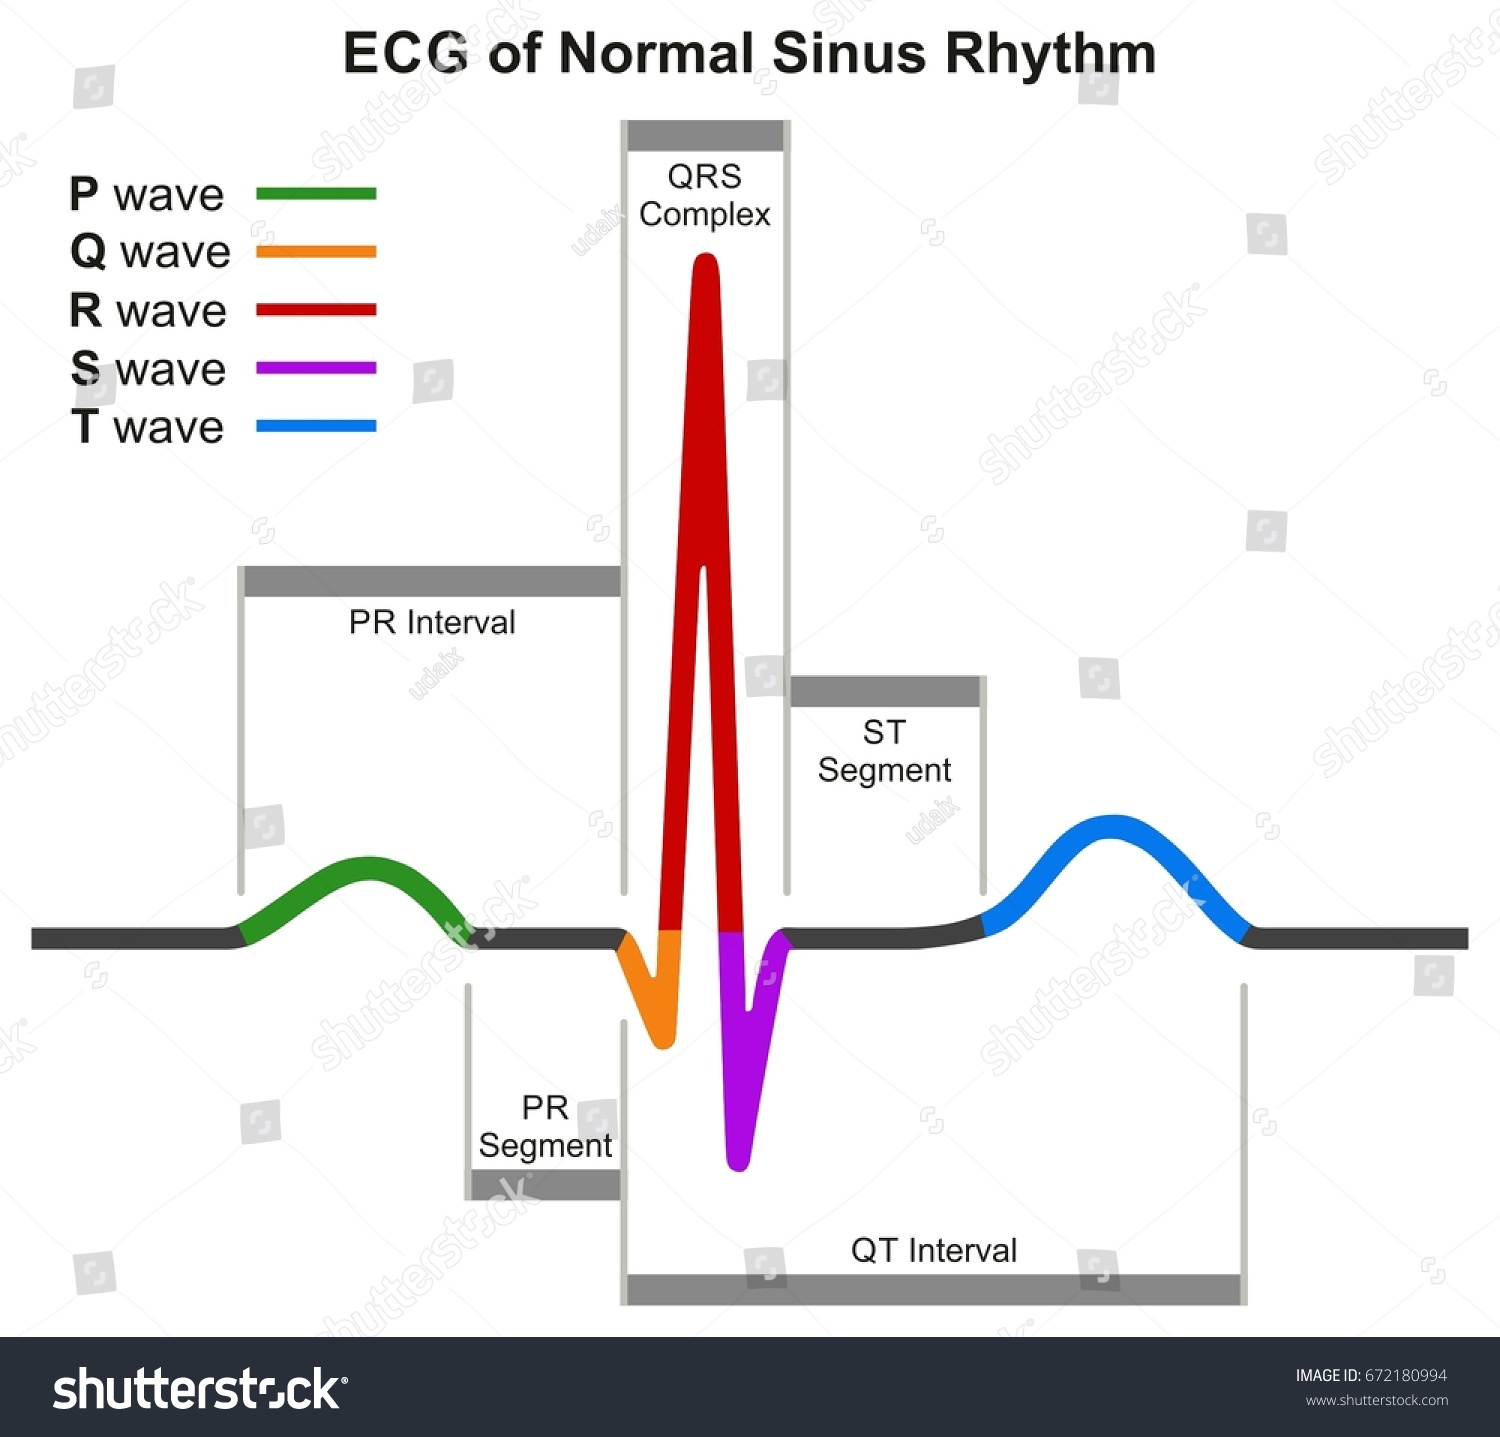 221239400424143816 also The Monitoring Ecg Clinical Essentials Paramedic Care Part 2 likewise Sinus Rhythms moreover Ecg Basics 1 in addition Ecg Leads Color Placement. on telemetry lead diagram